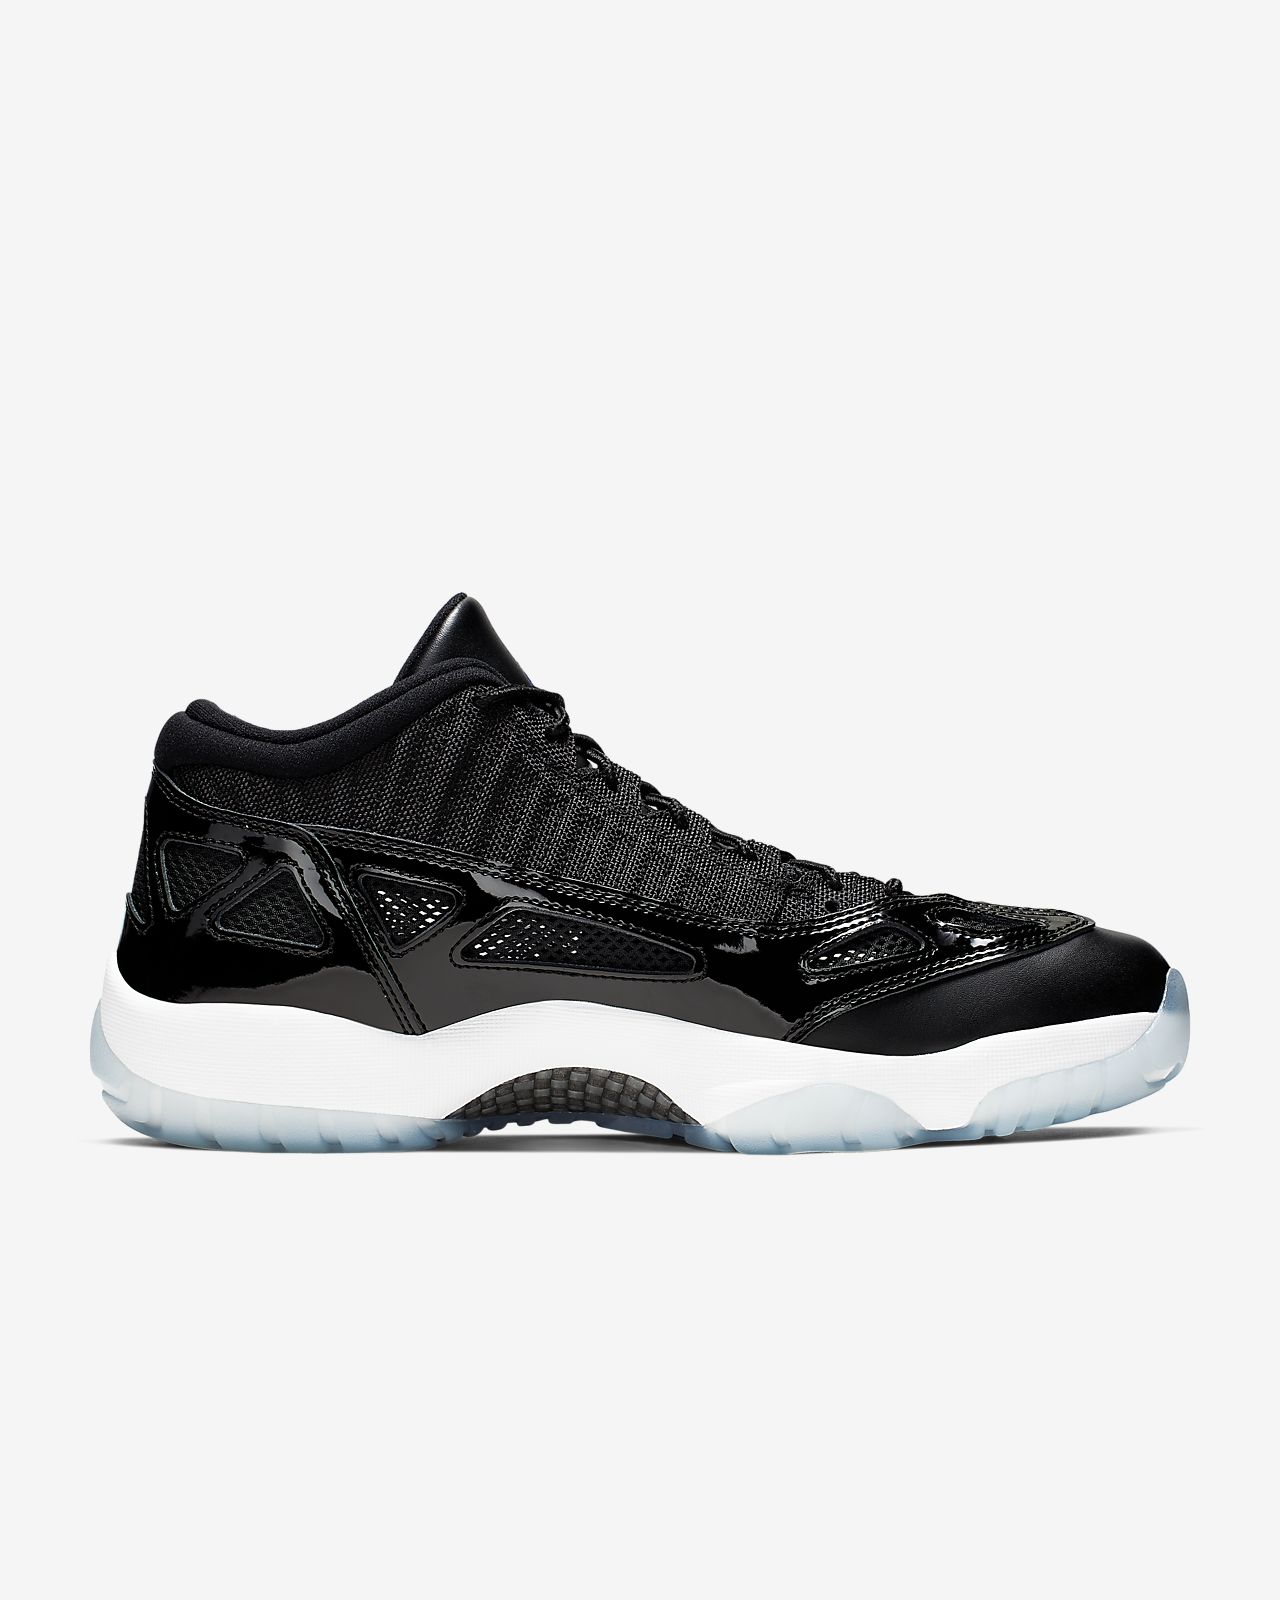 Air Low Ie Chaussure Jordan Retro 11 LqzpUSMGjV